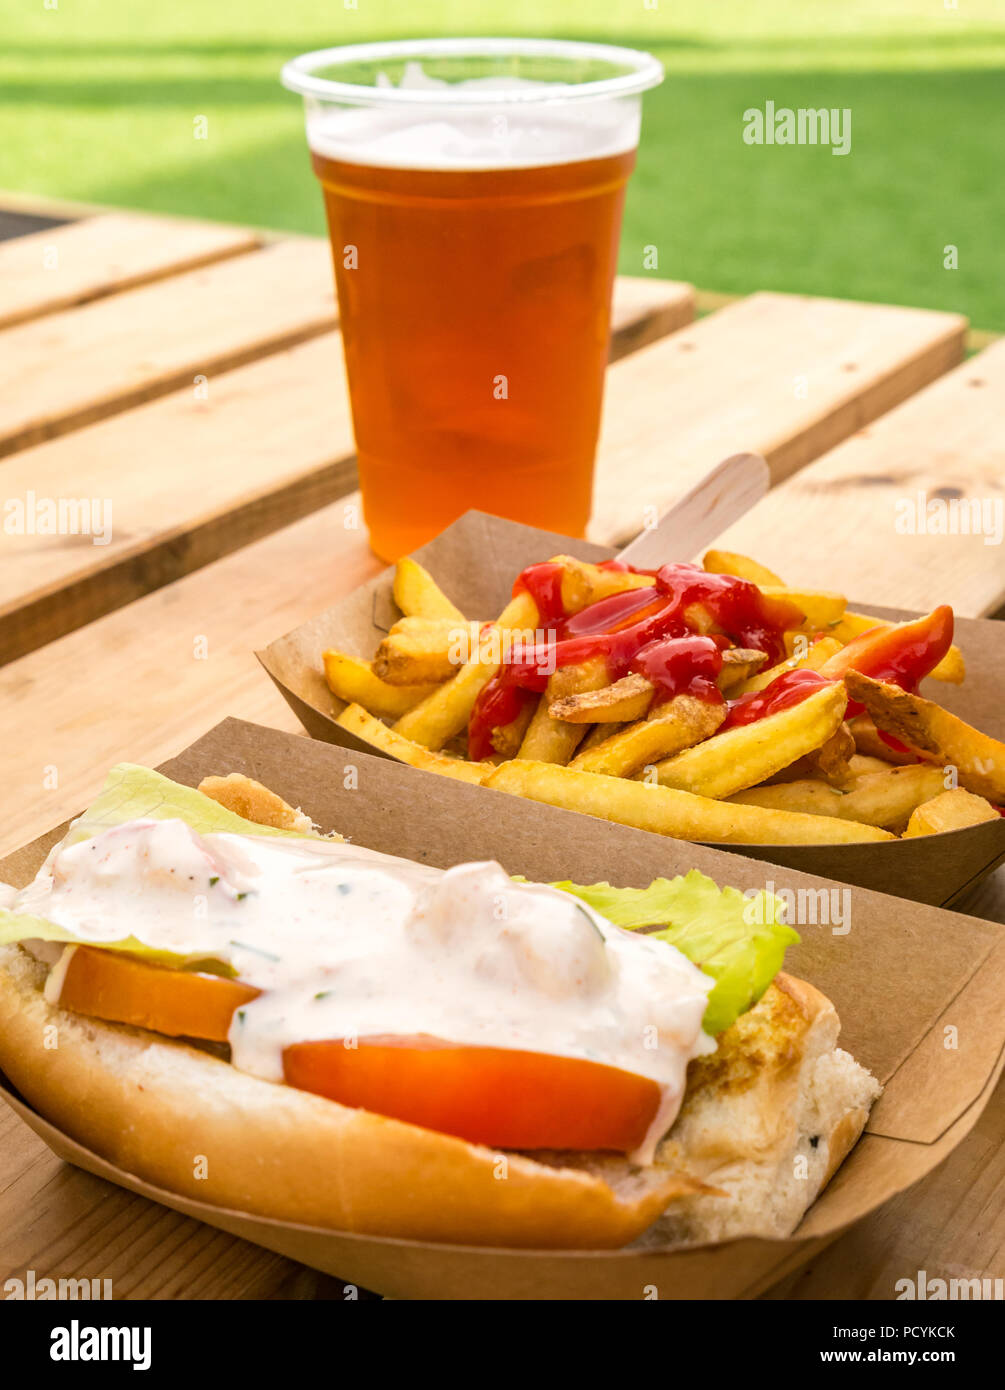 Takeaway food of lobster roll with chips or french fries with ketchup and pint of IPA beer on outdoor picnic table - Stock Image